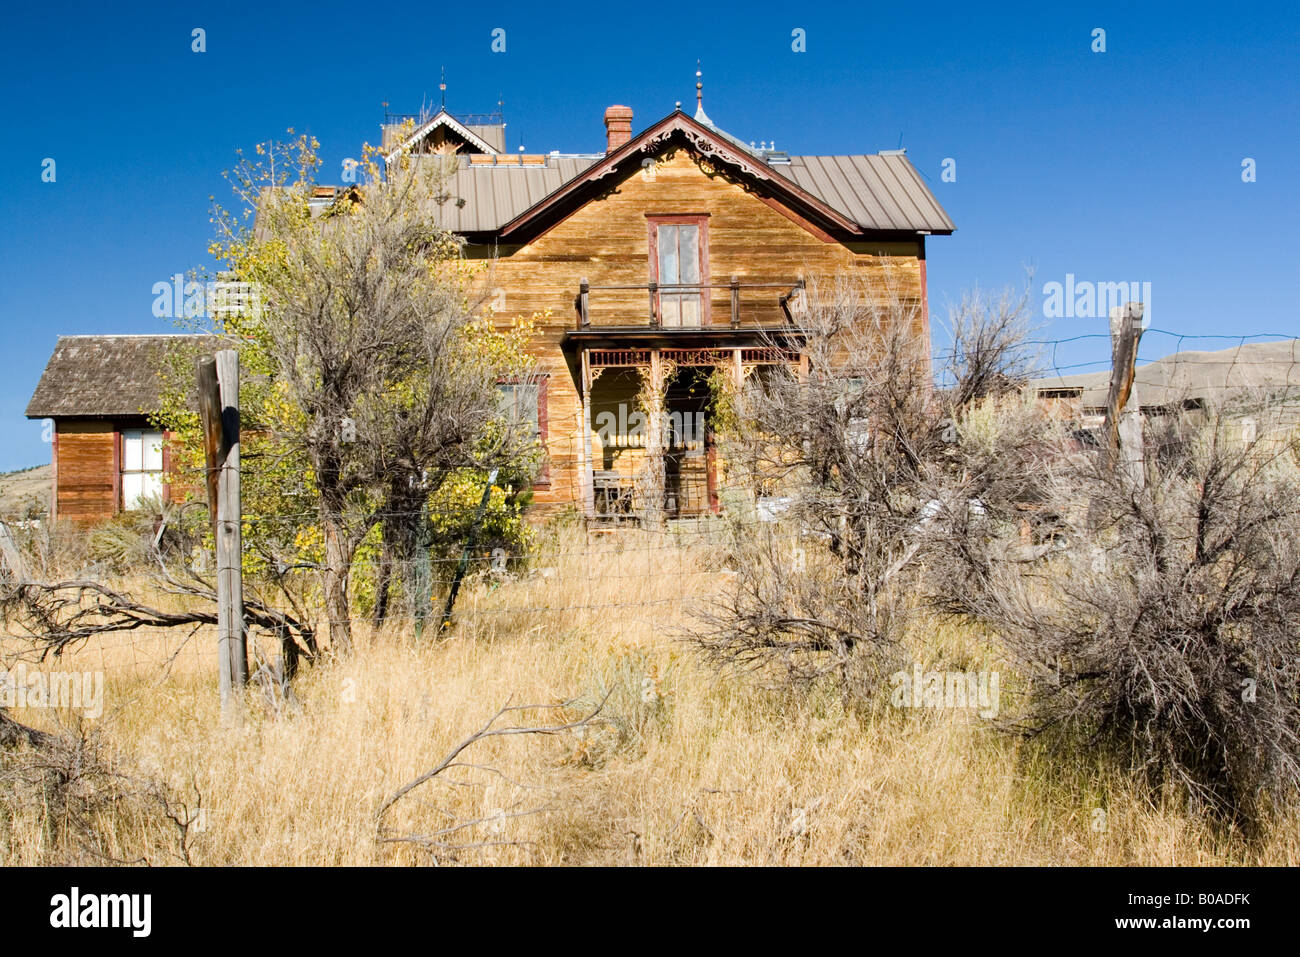 victorian era house in ghost town, Montana Stock Photo